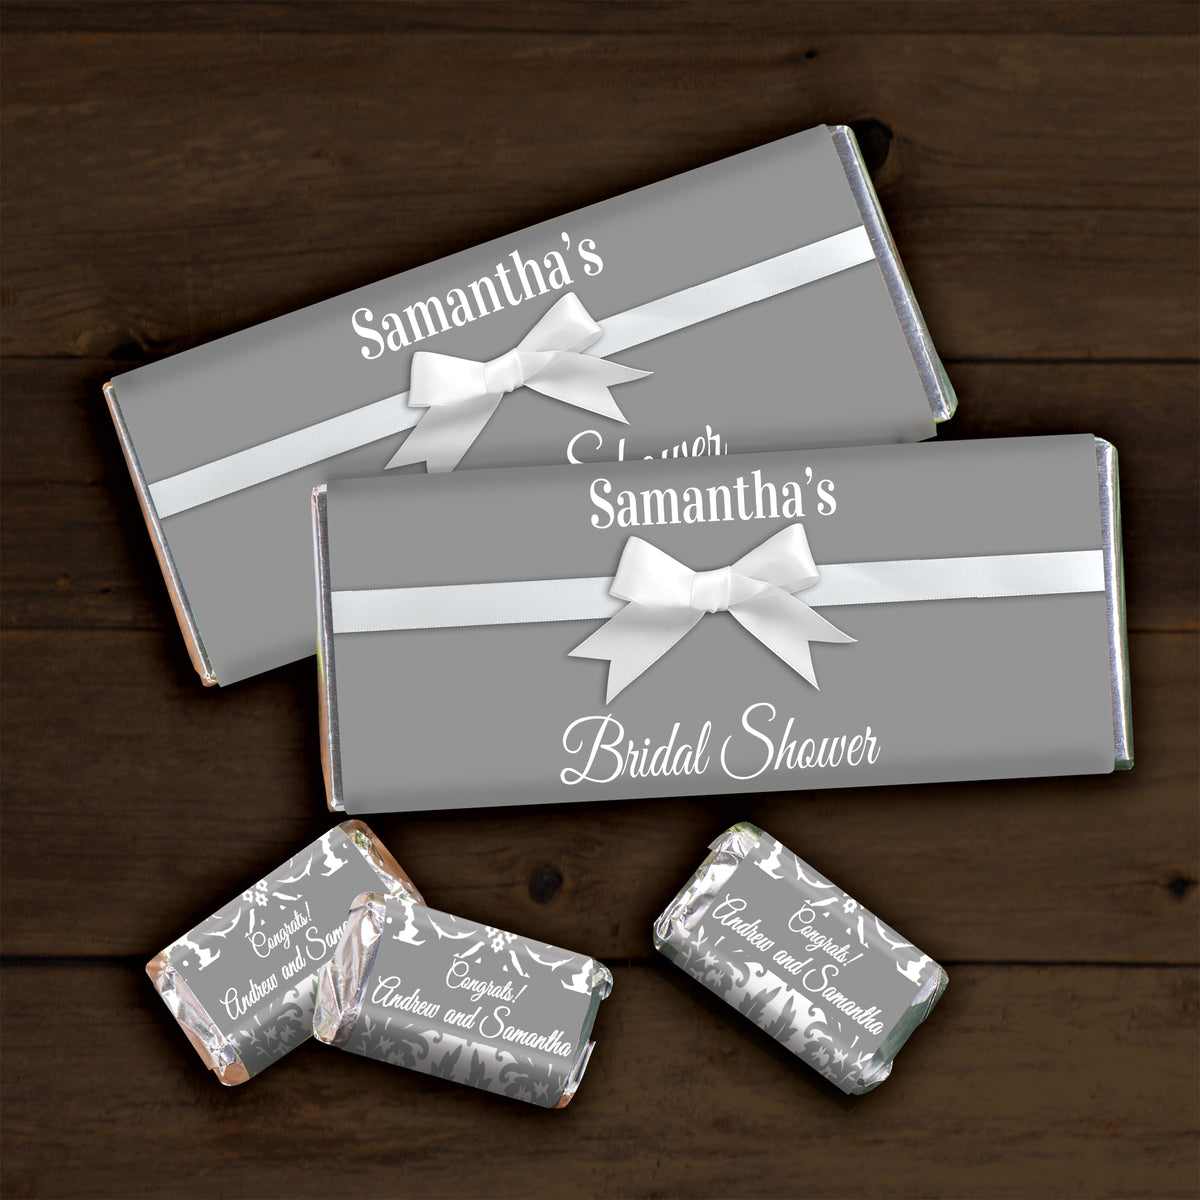 Hershey's Chocolate Vintage Varsity Personalized Candy Bars